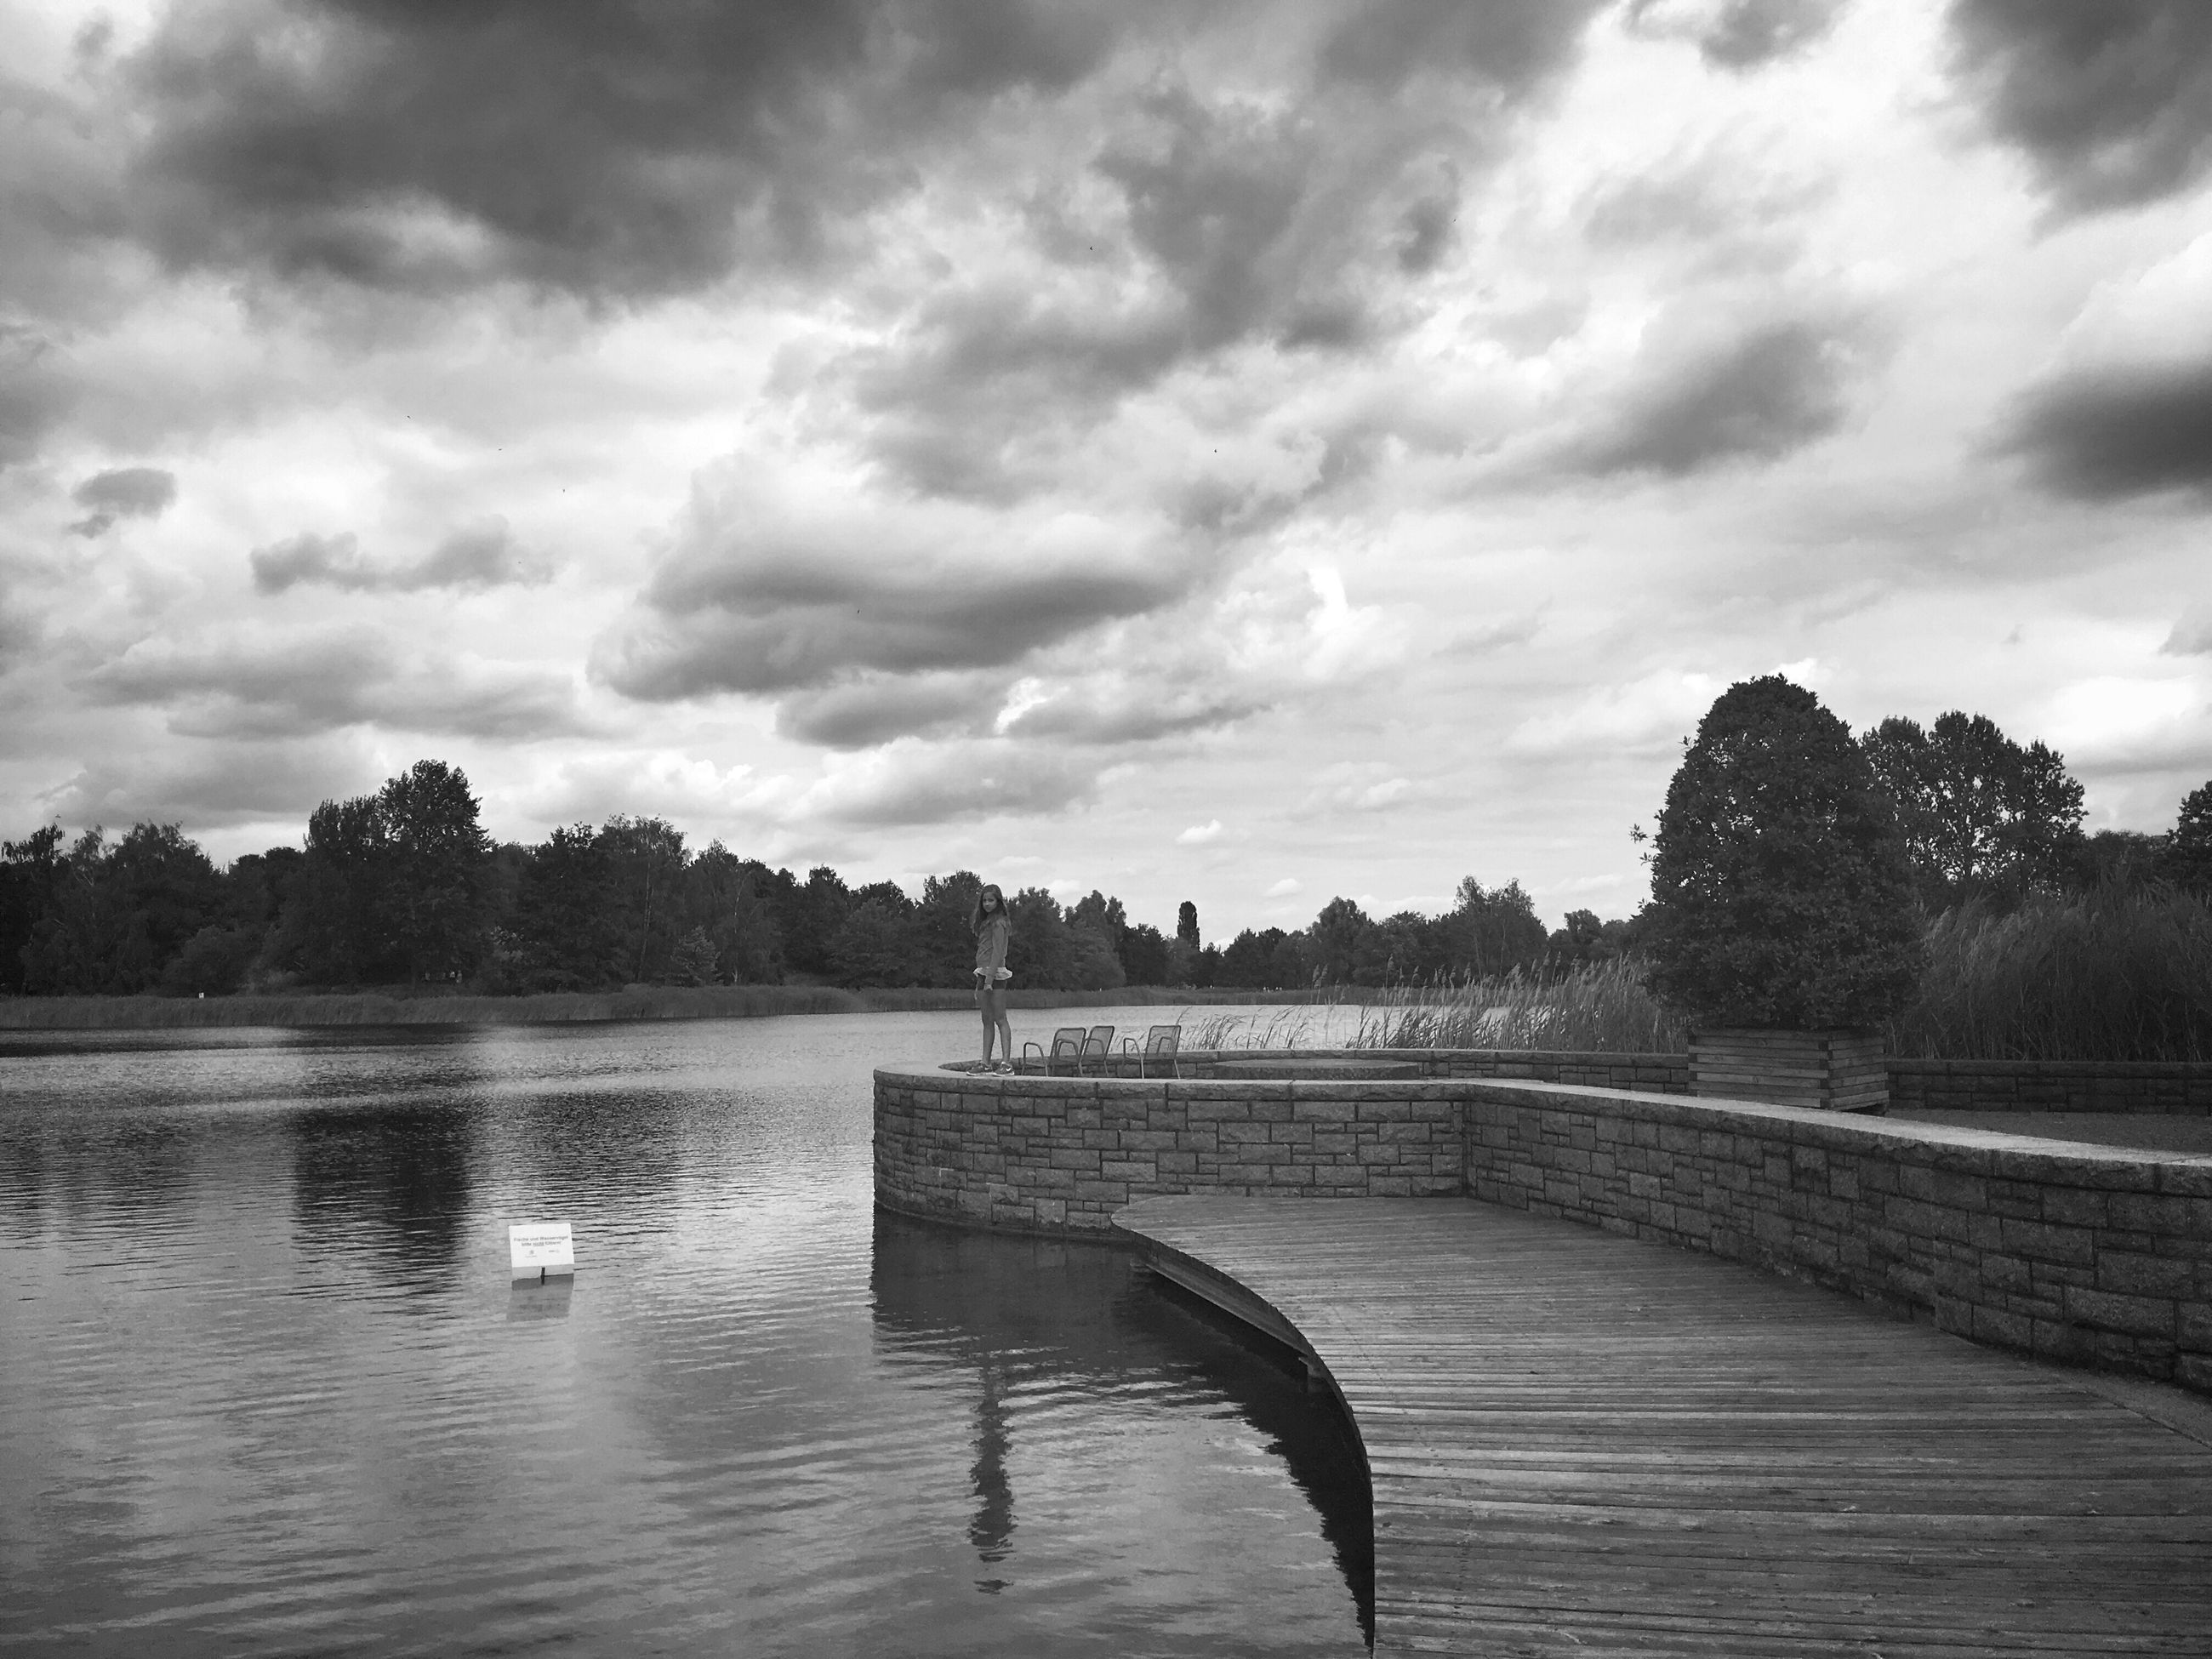 sky, water, cloud - sky, lake, tree, tranquility, tranquil scene, cloudy, river, cloud, scenics, nature, beauty in nature, overcast, rippled, day, outdoors, lakeshore, idyllic, no people, non-urban scene, calm, landscape, weather, growth, remote, non urban scene